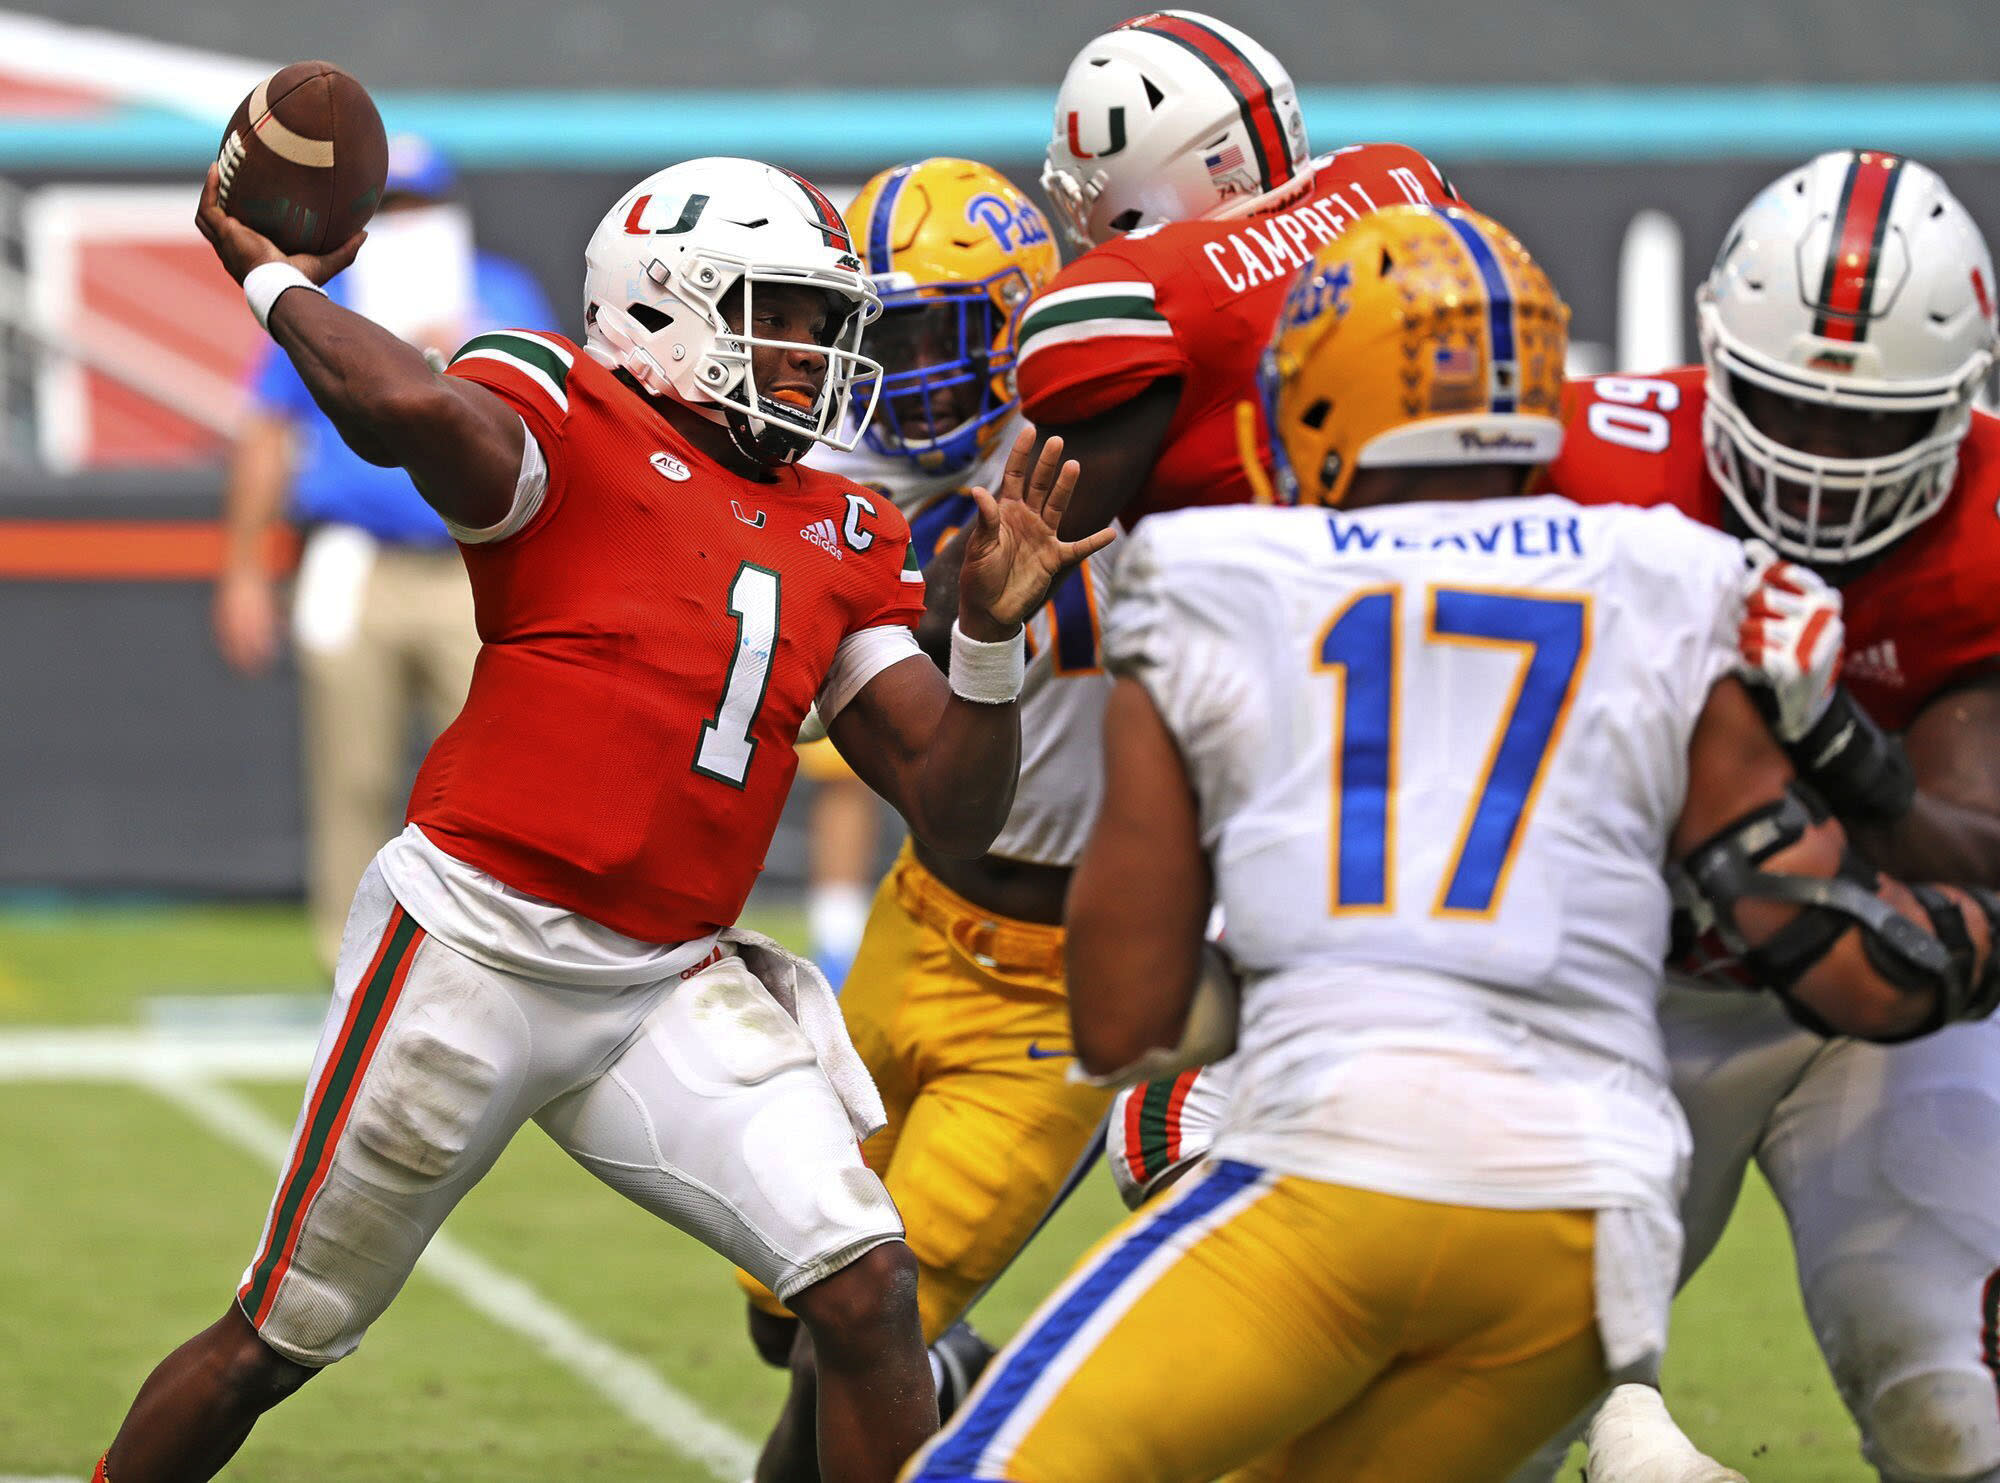 Miami quarterback D'Eriq King (1) passes against Pitts in the second half of an NCAA college football game in Miami Gardens, Fla., Saturday, Oct. 17, 2020. (Al Diaz/Miami Herald via AP)